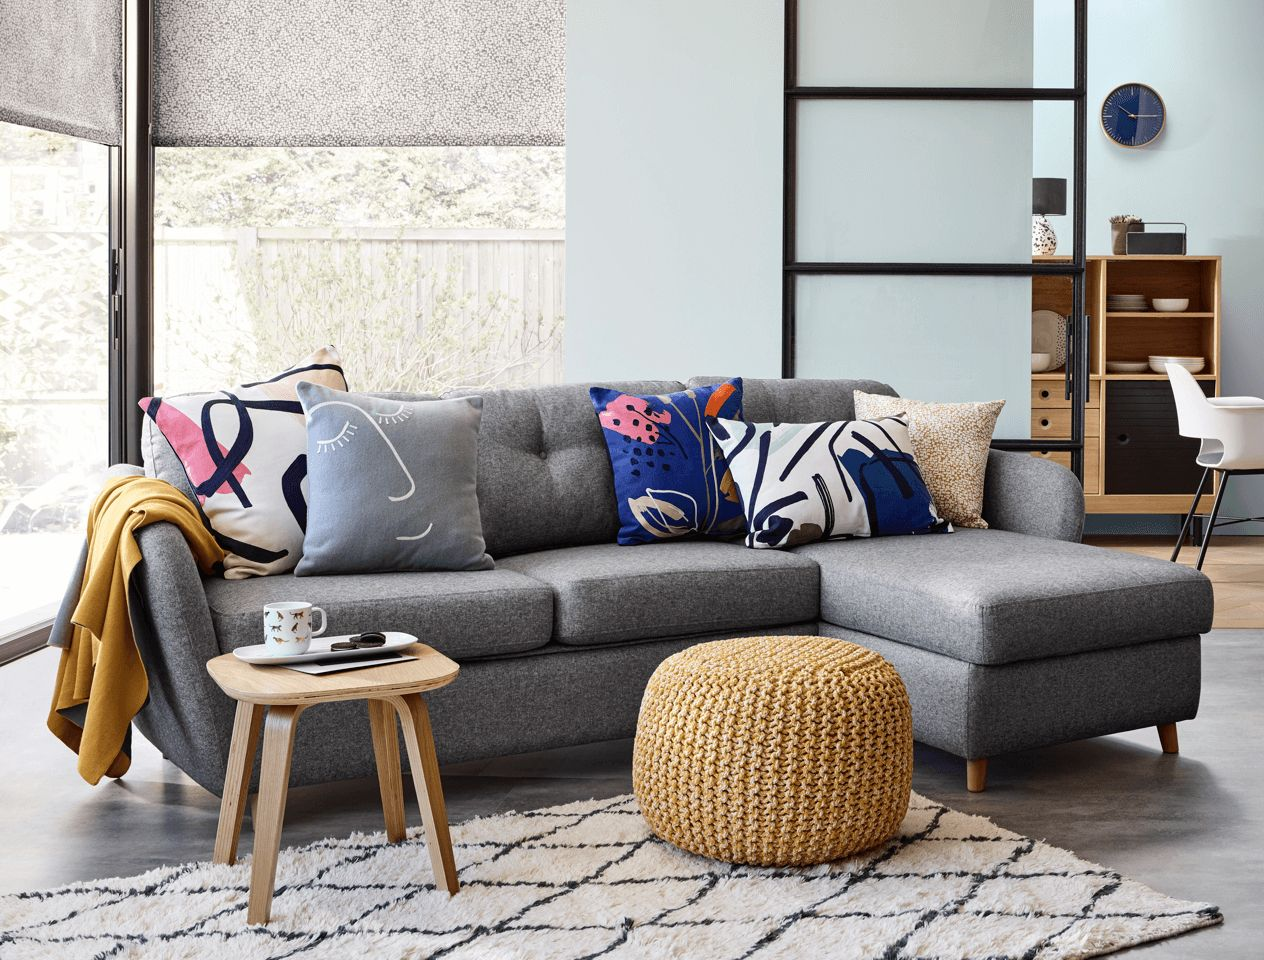 Merveilleux Light Grey Sofa With Patterned Cushions